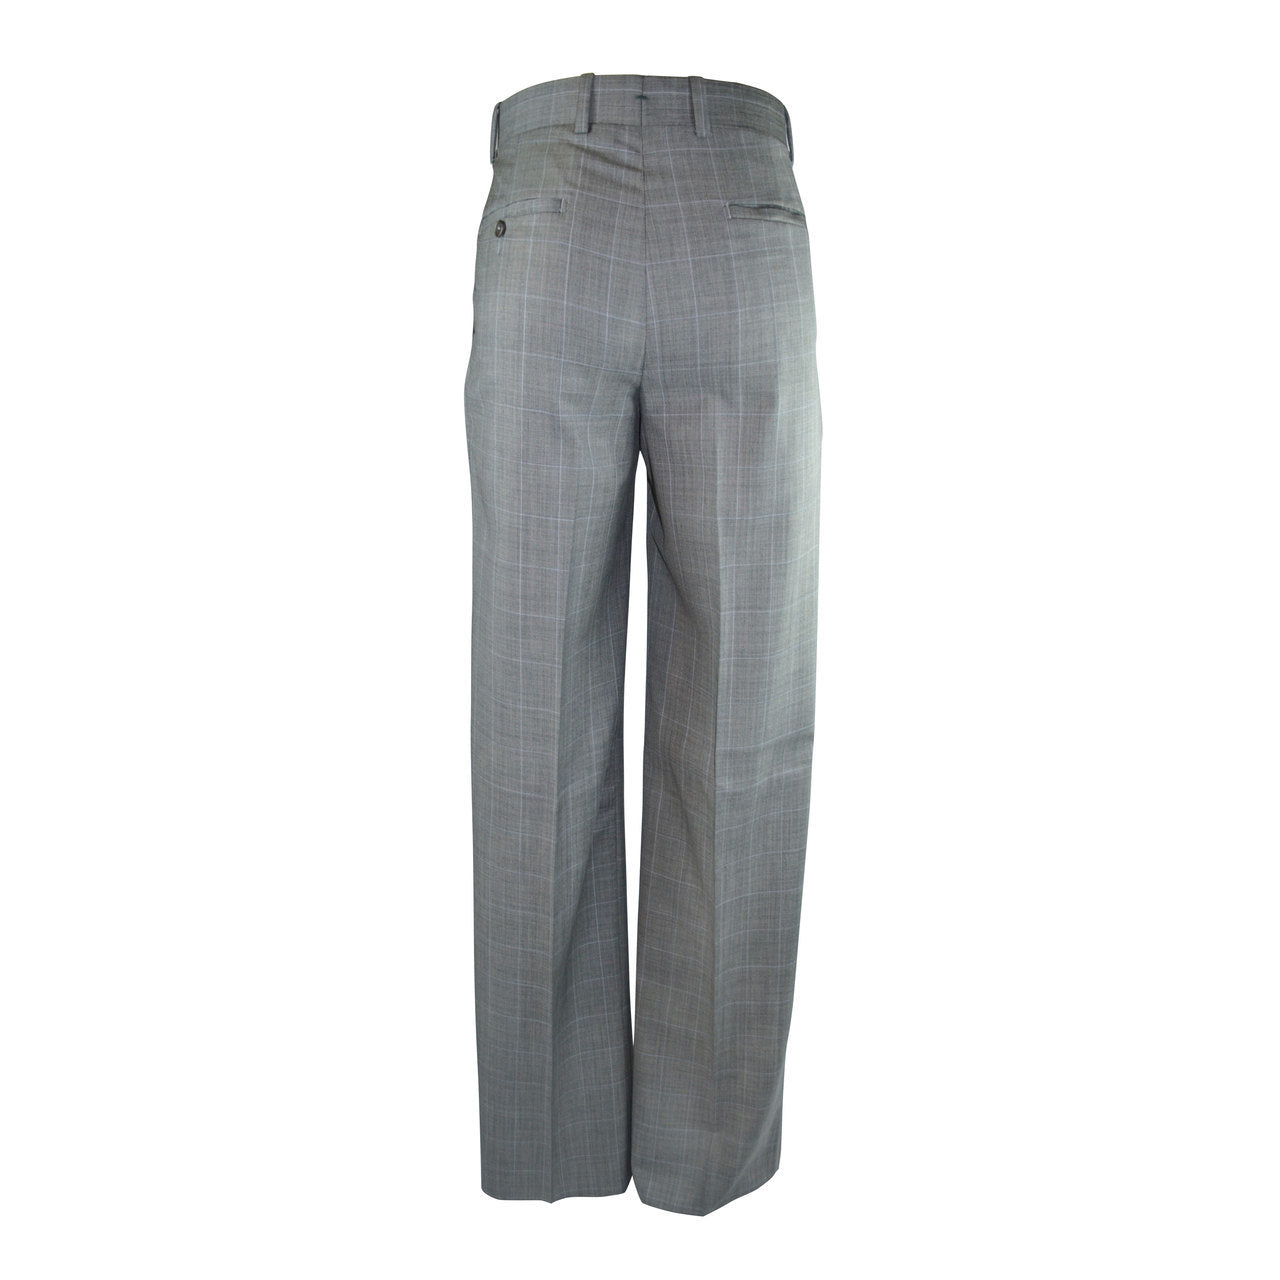 Laguna Flat Front Trouser - Grey Windowpane